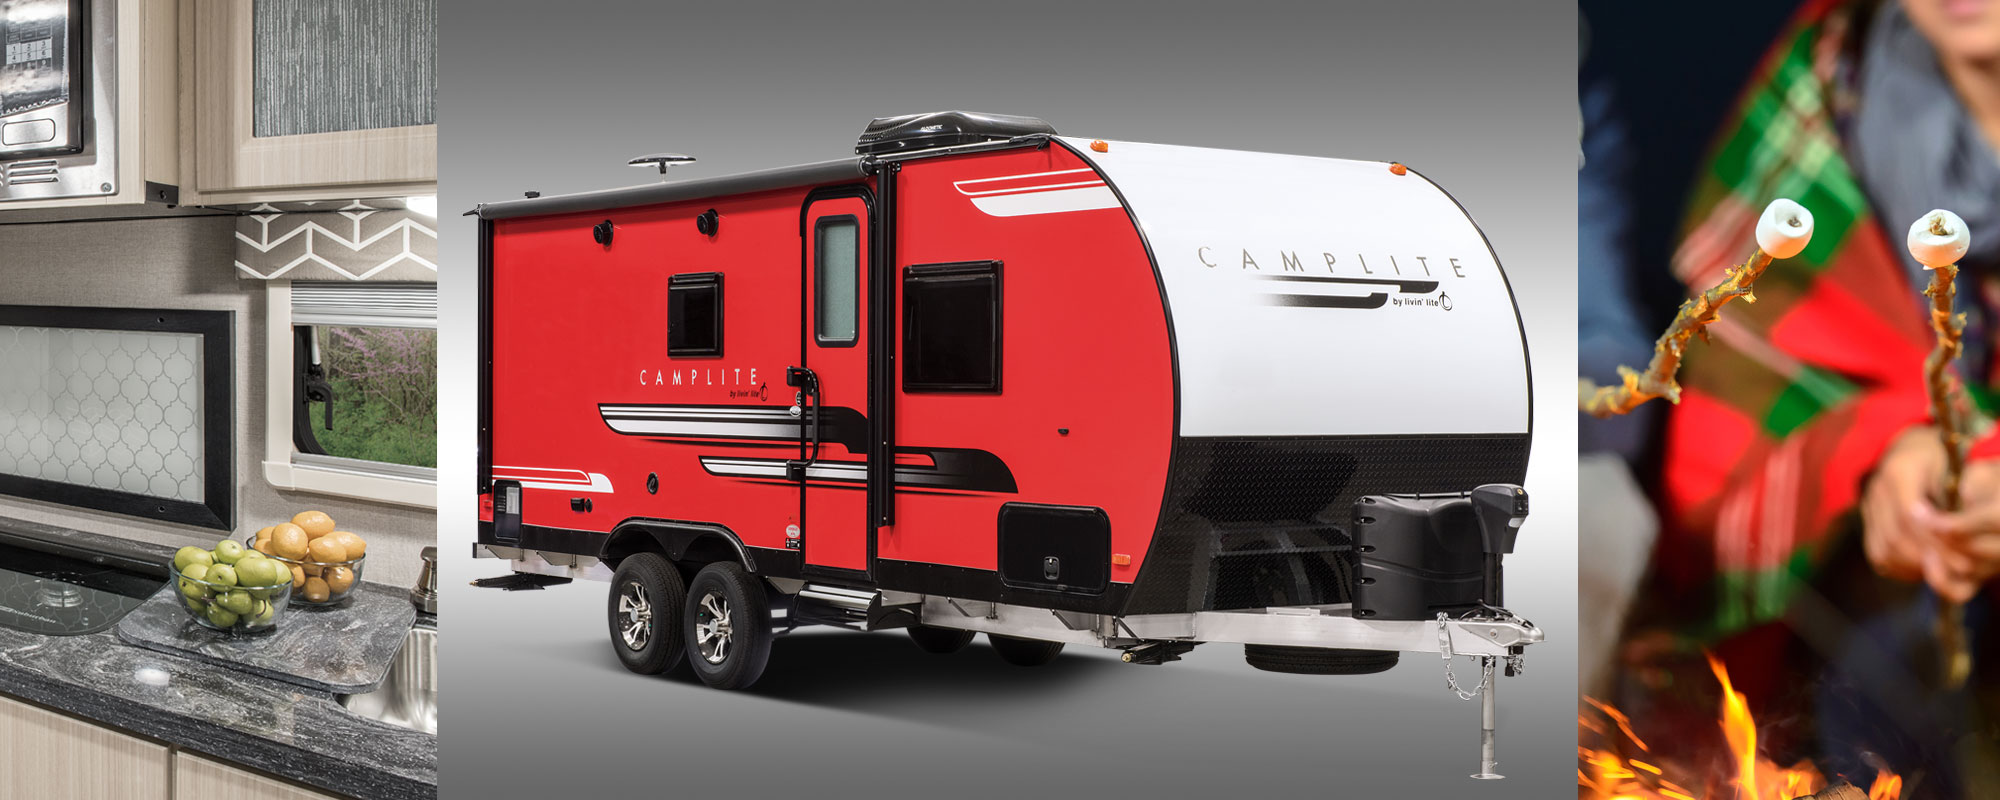 Livin' Lite CampLite Travel Trailer